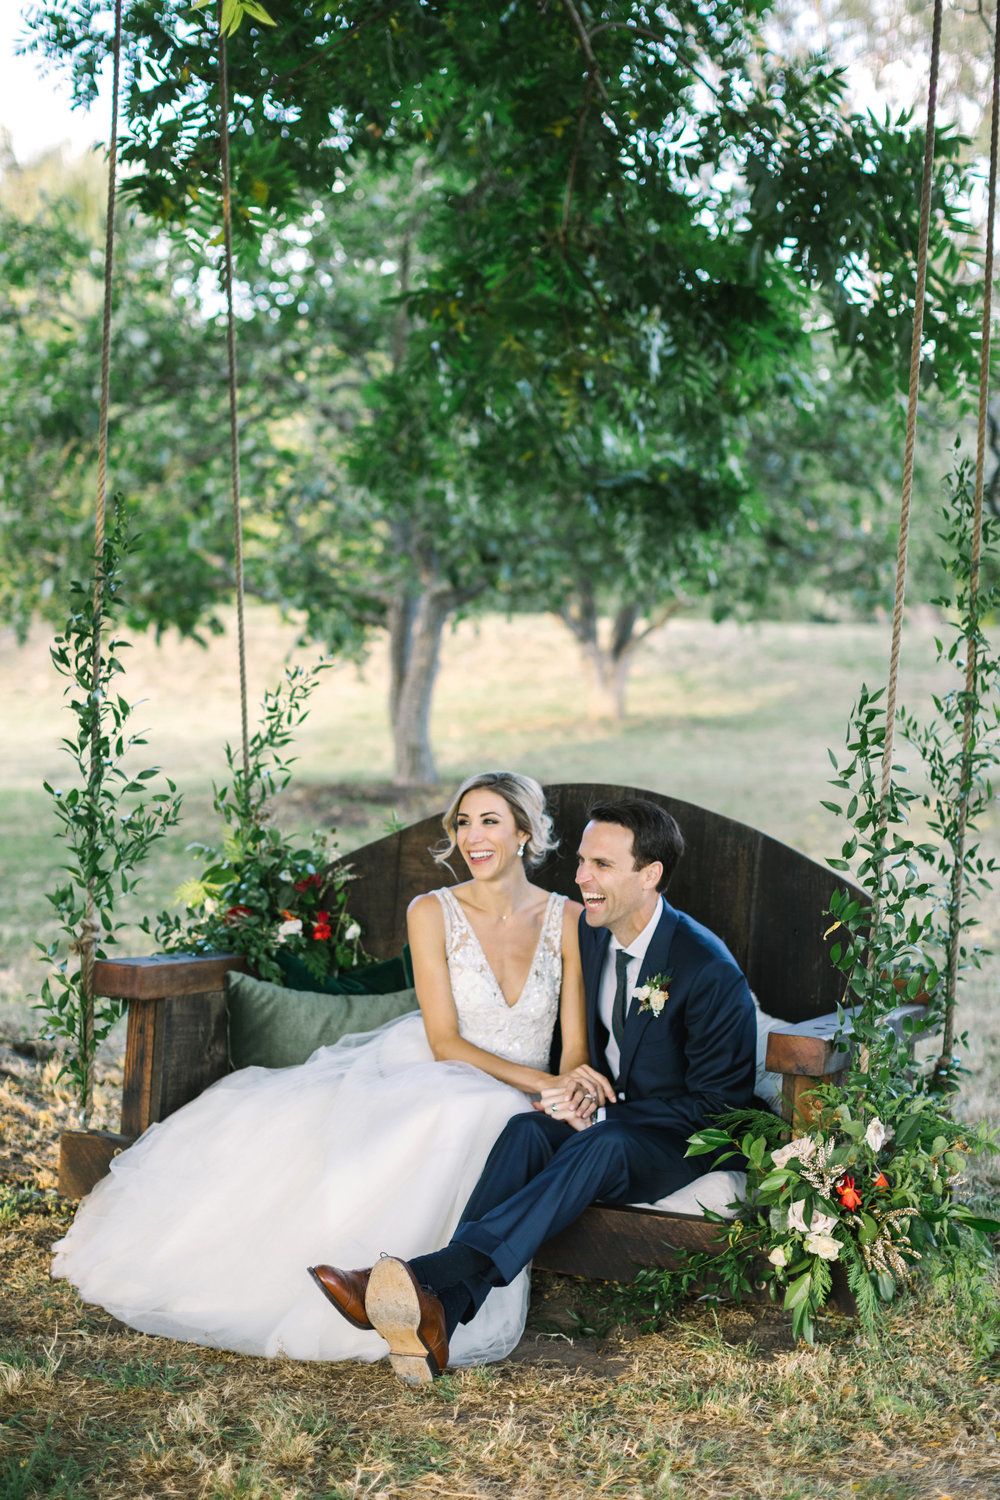 Boho wedding swing with flowers and vines by Venn Floral at Olympia's Valley Estate photographed by The Edges in Petaluma.